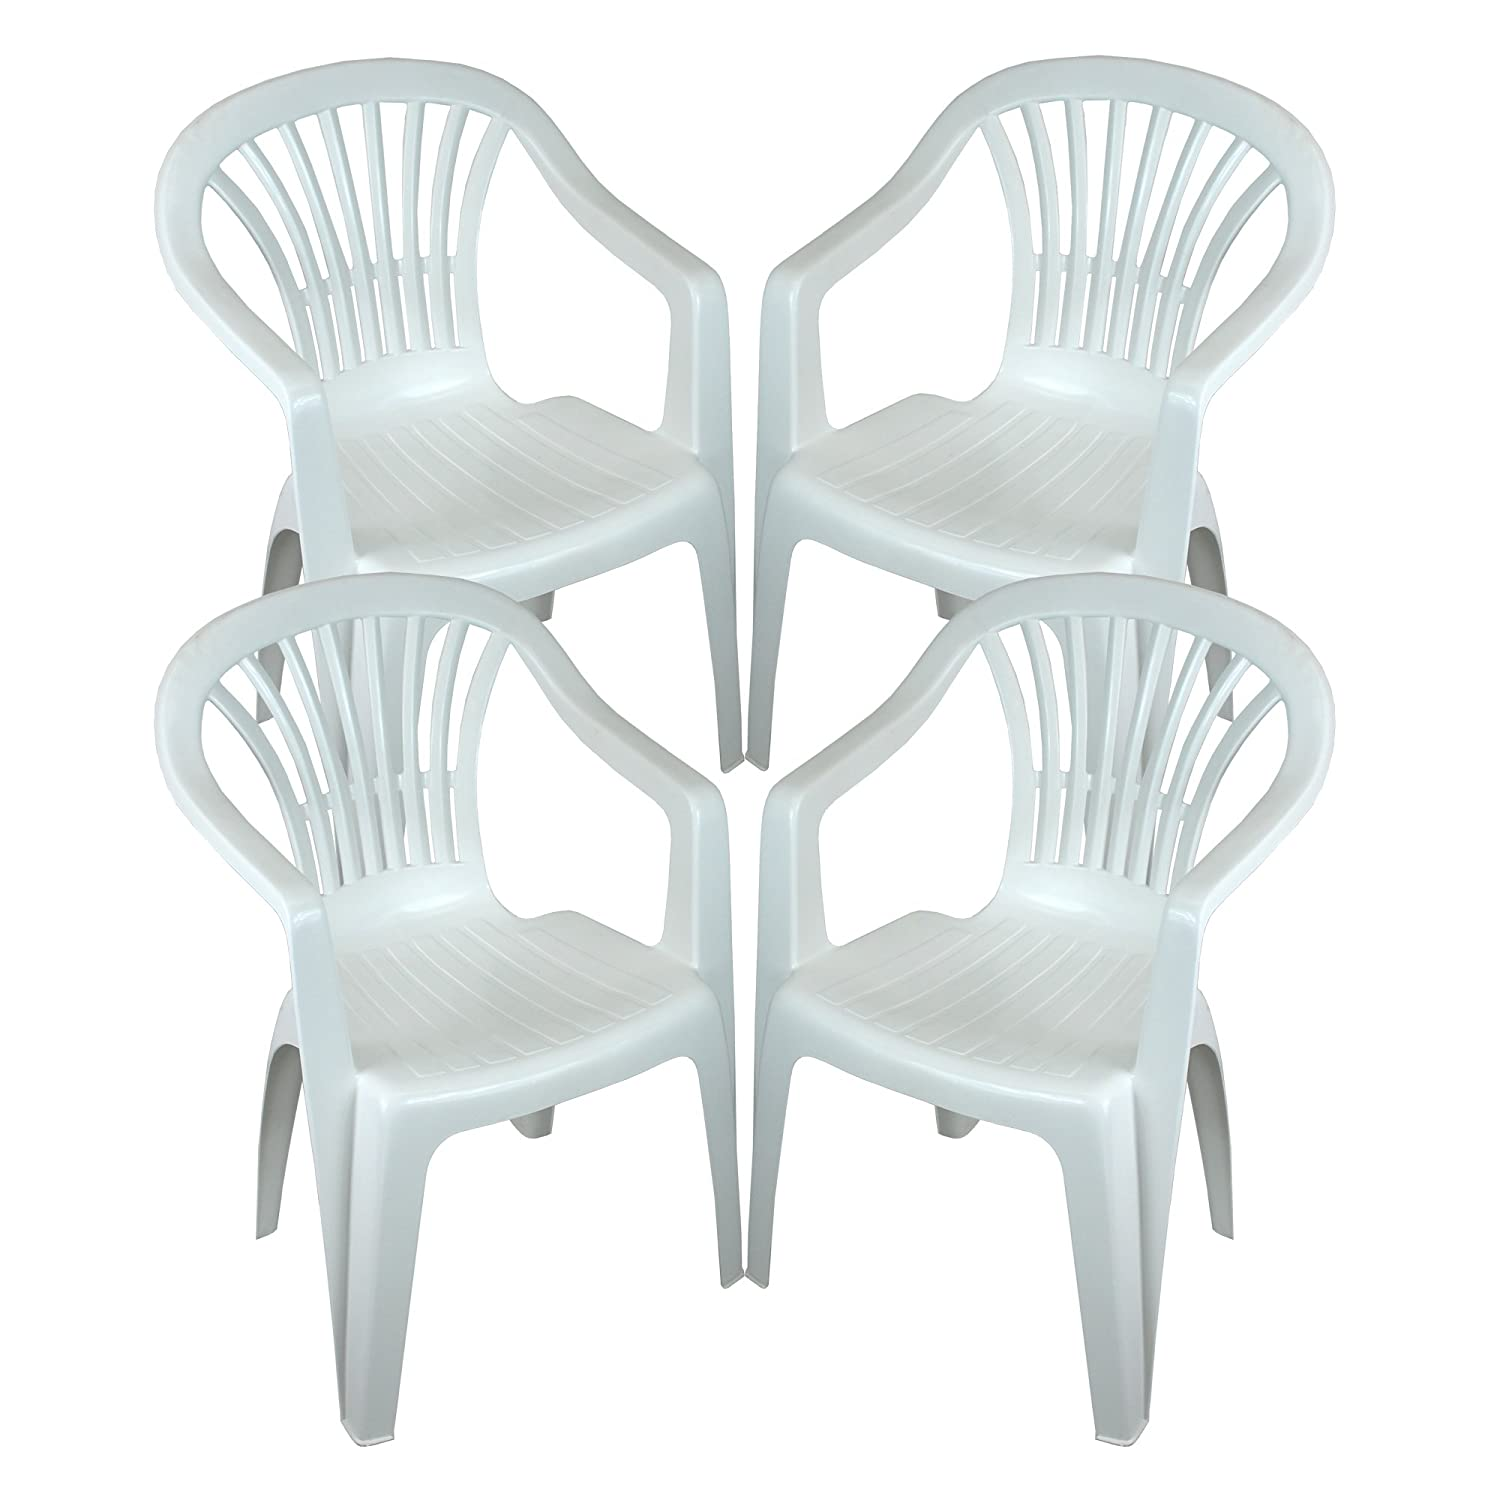 CrazyGadget Plastic Garden Low Back Chair Stackable Patio Outdoor Party Seat Chairs Picnic White Pack of 4 (X4) CrazyGadget®